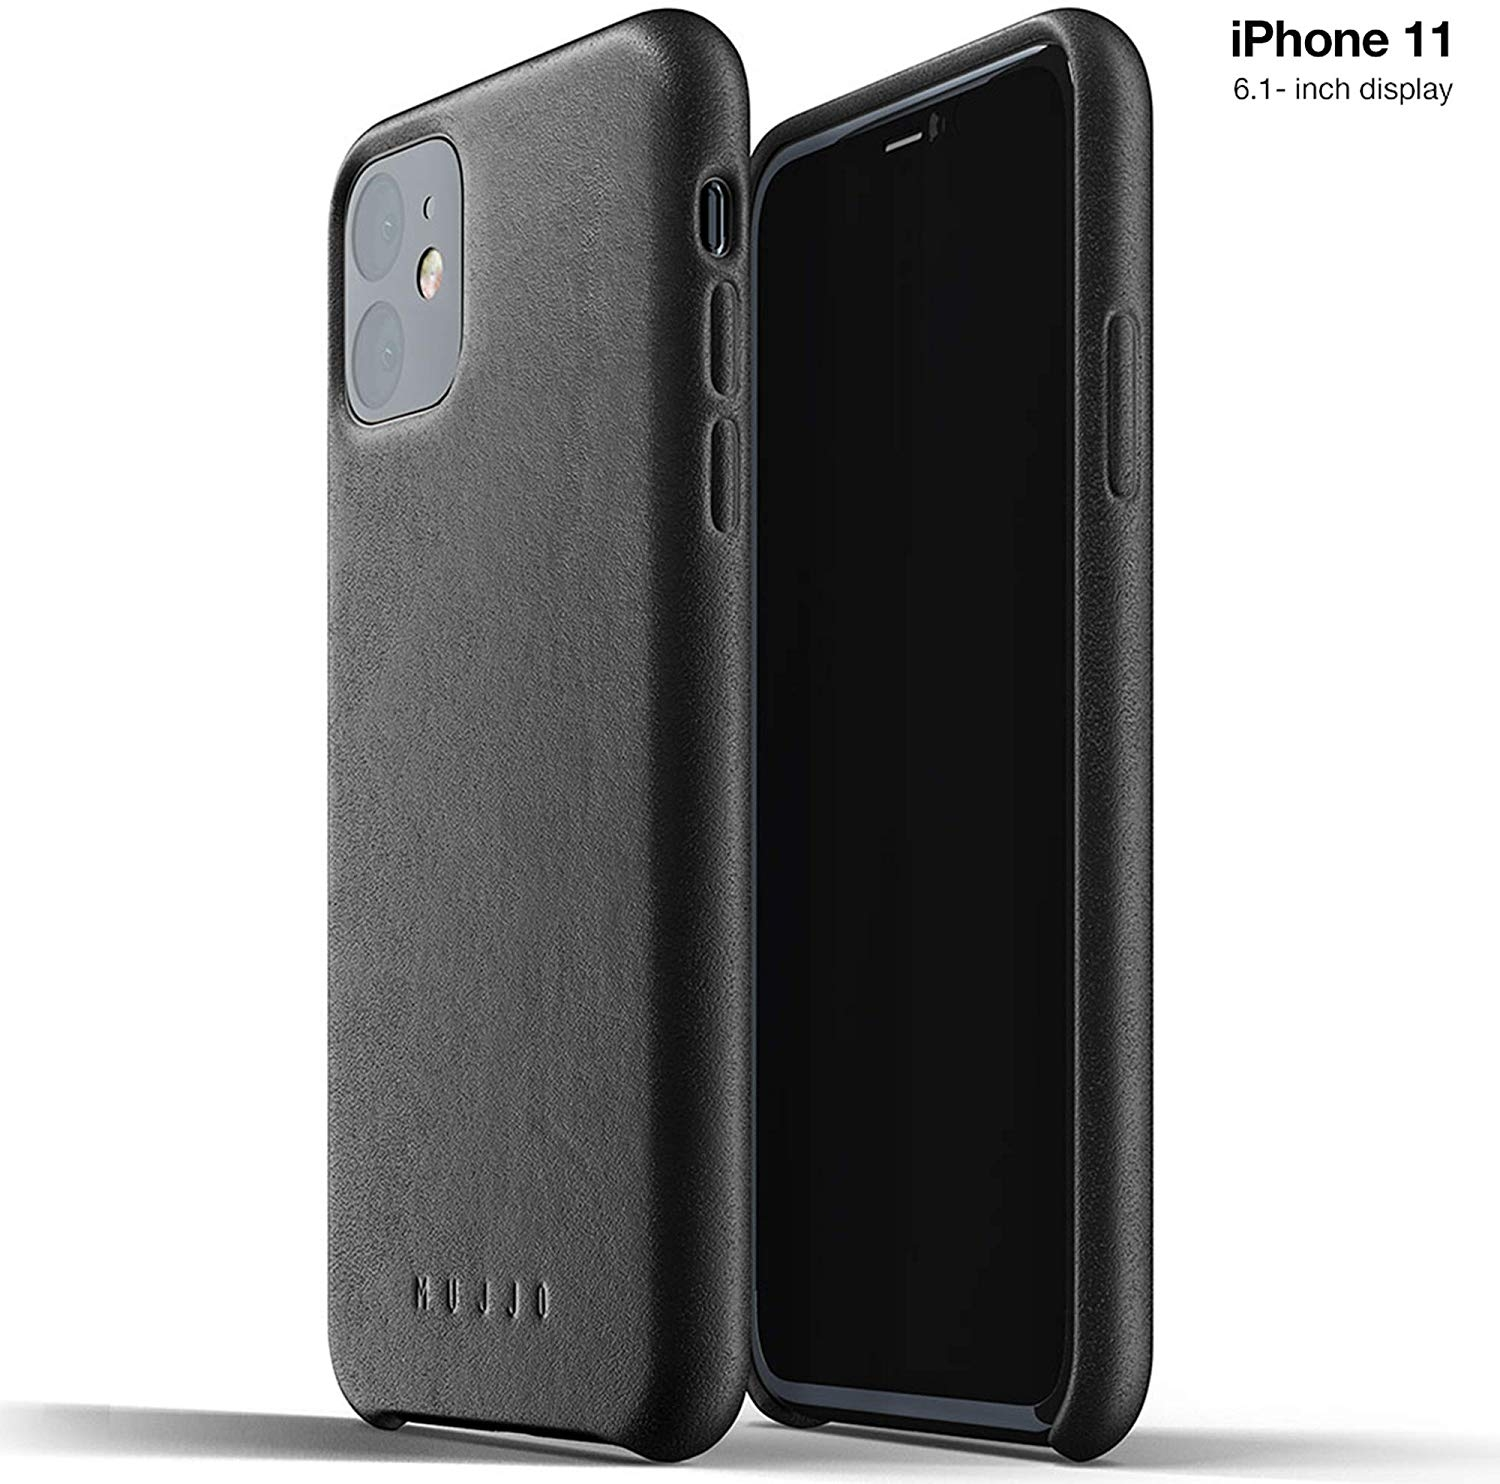 MUJJO Full Leather Case - Δερμάτινη Θήκη iPhone 11 - Black (MUJJO-CL-005-BK)